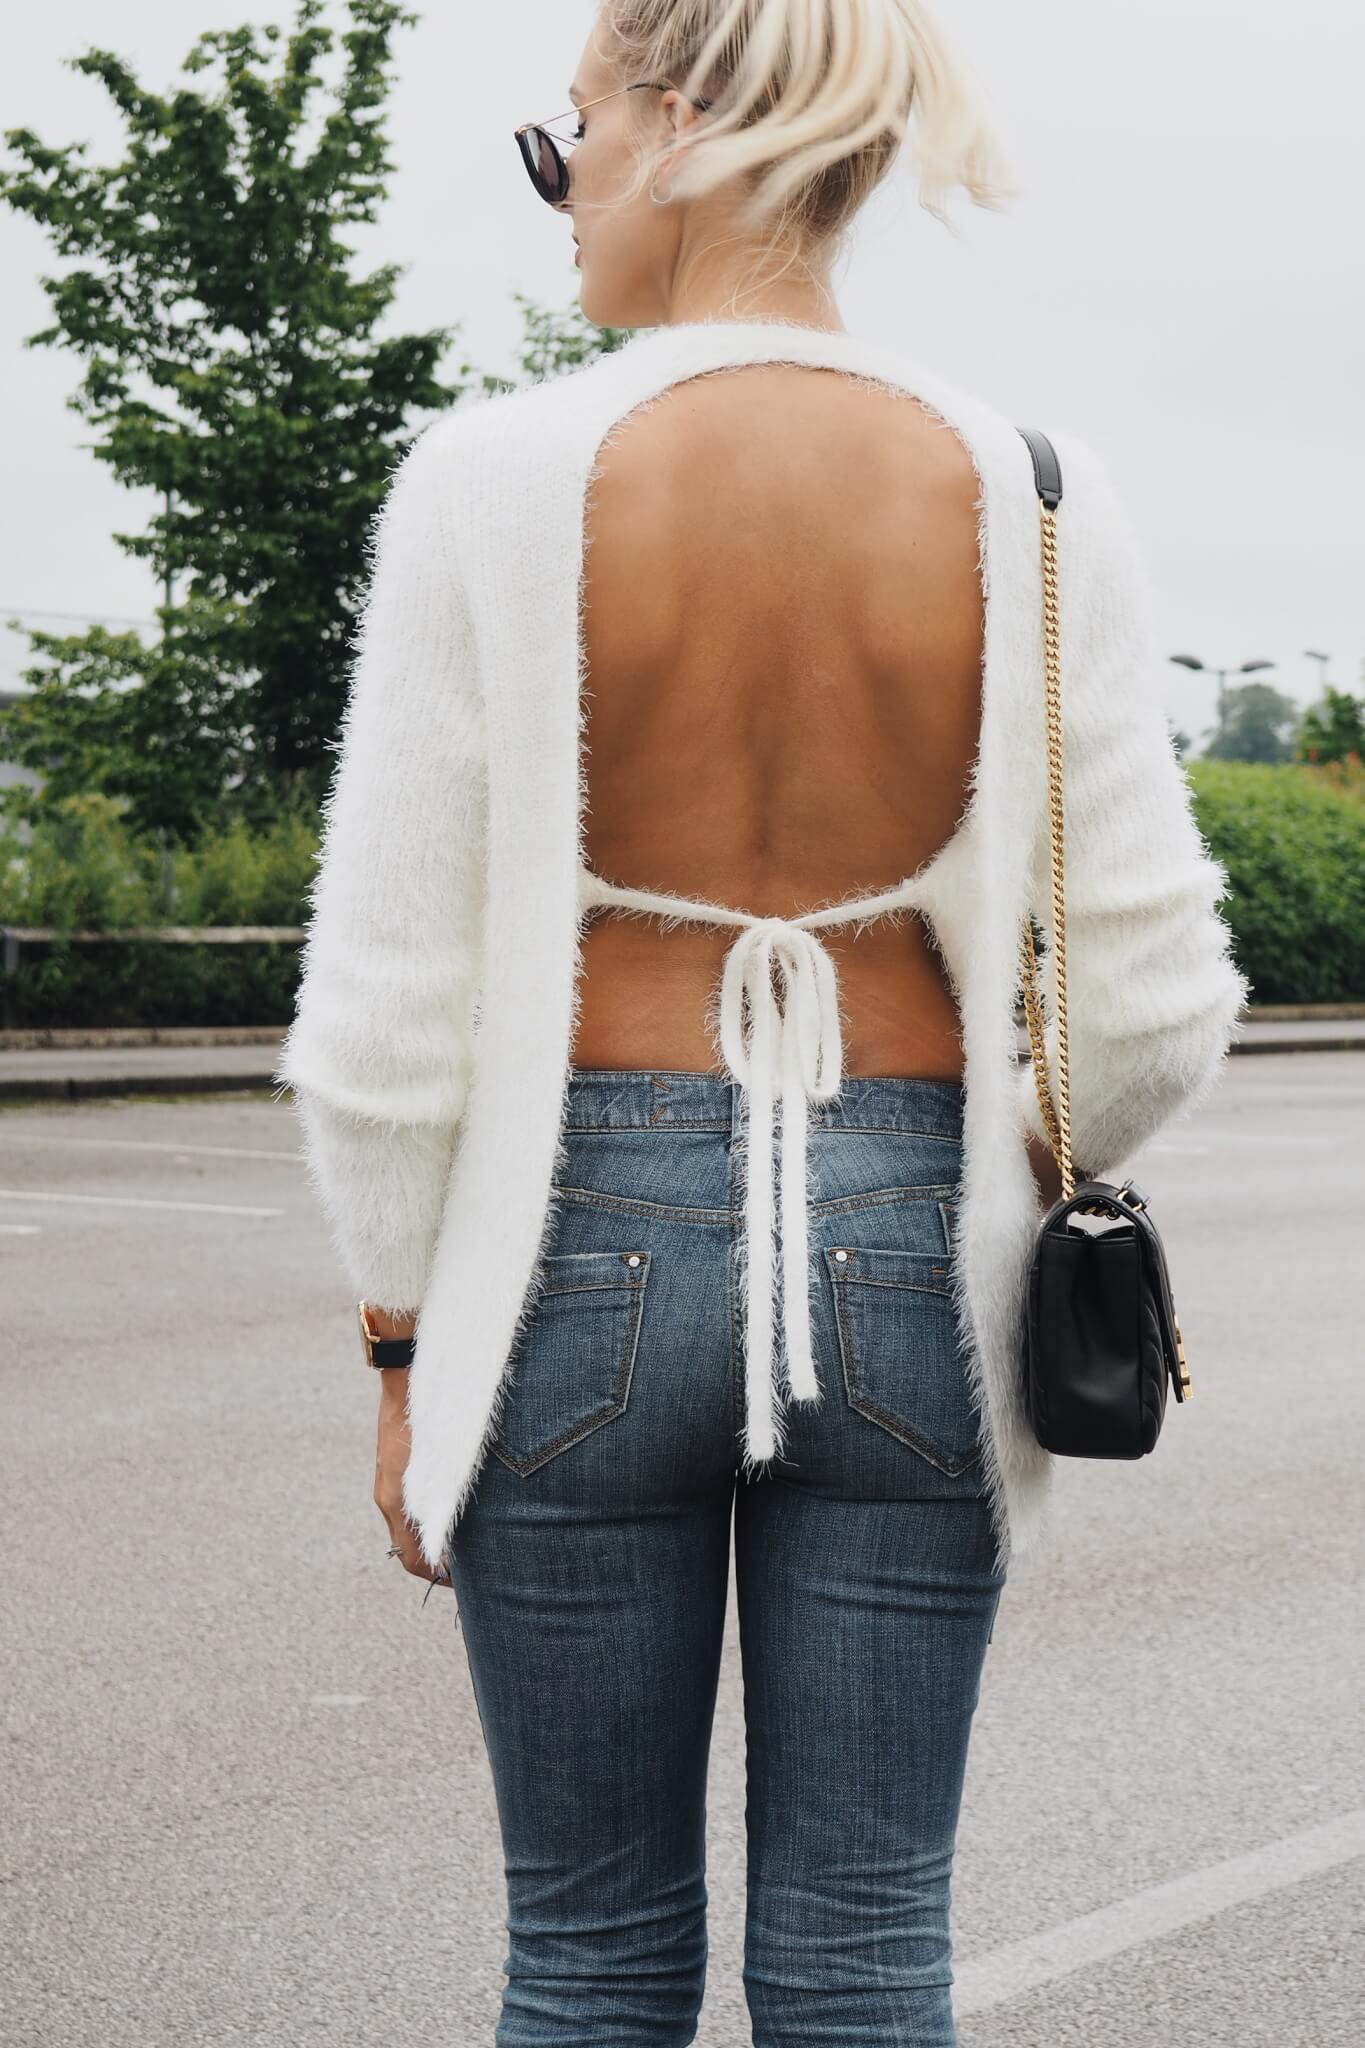 Backless Sweater from REVOLVE on fashion blog Lurchhoundloves